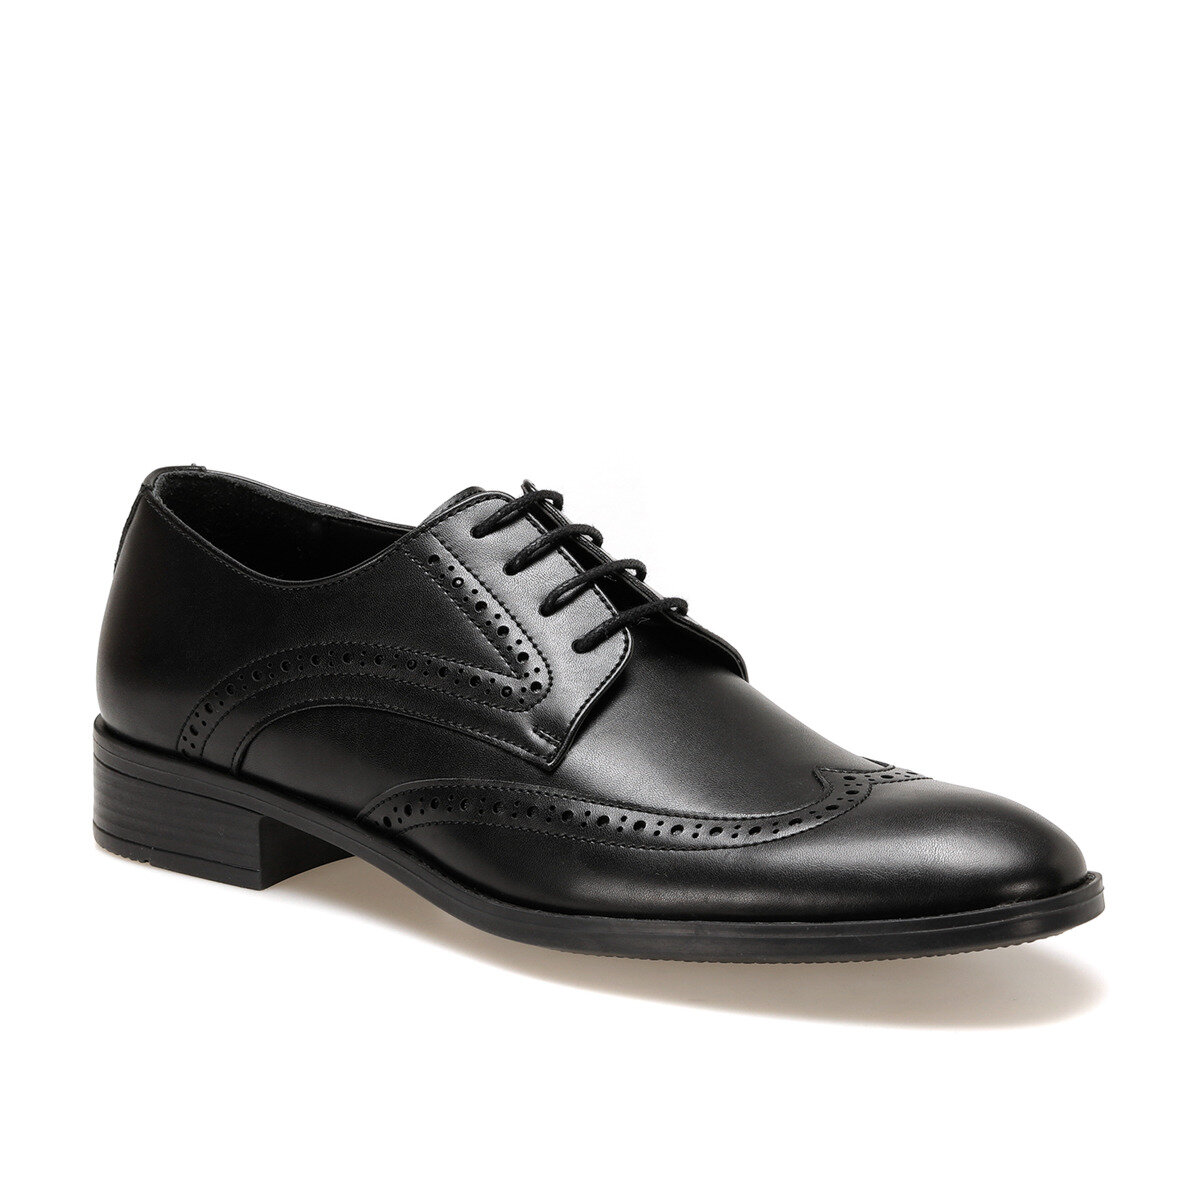 FLO 113-5 Black Men Dress Shoes DOWN TOWN